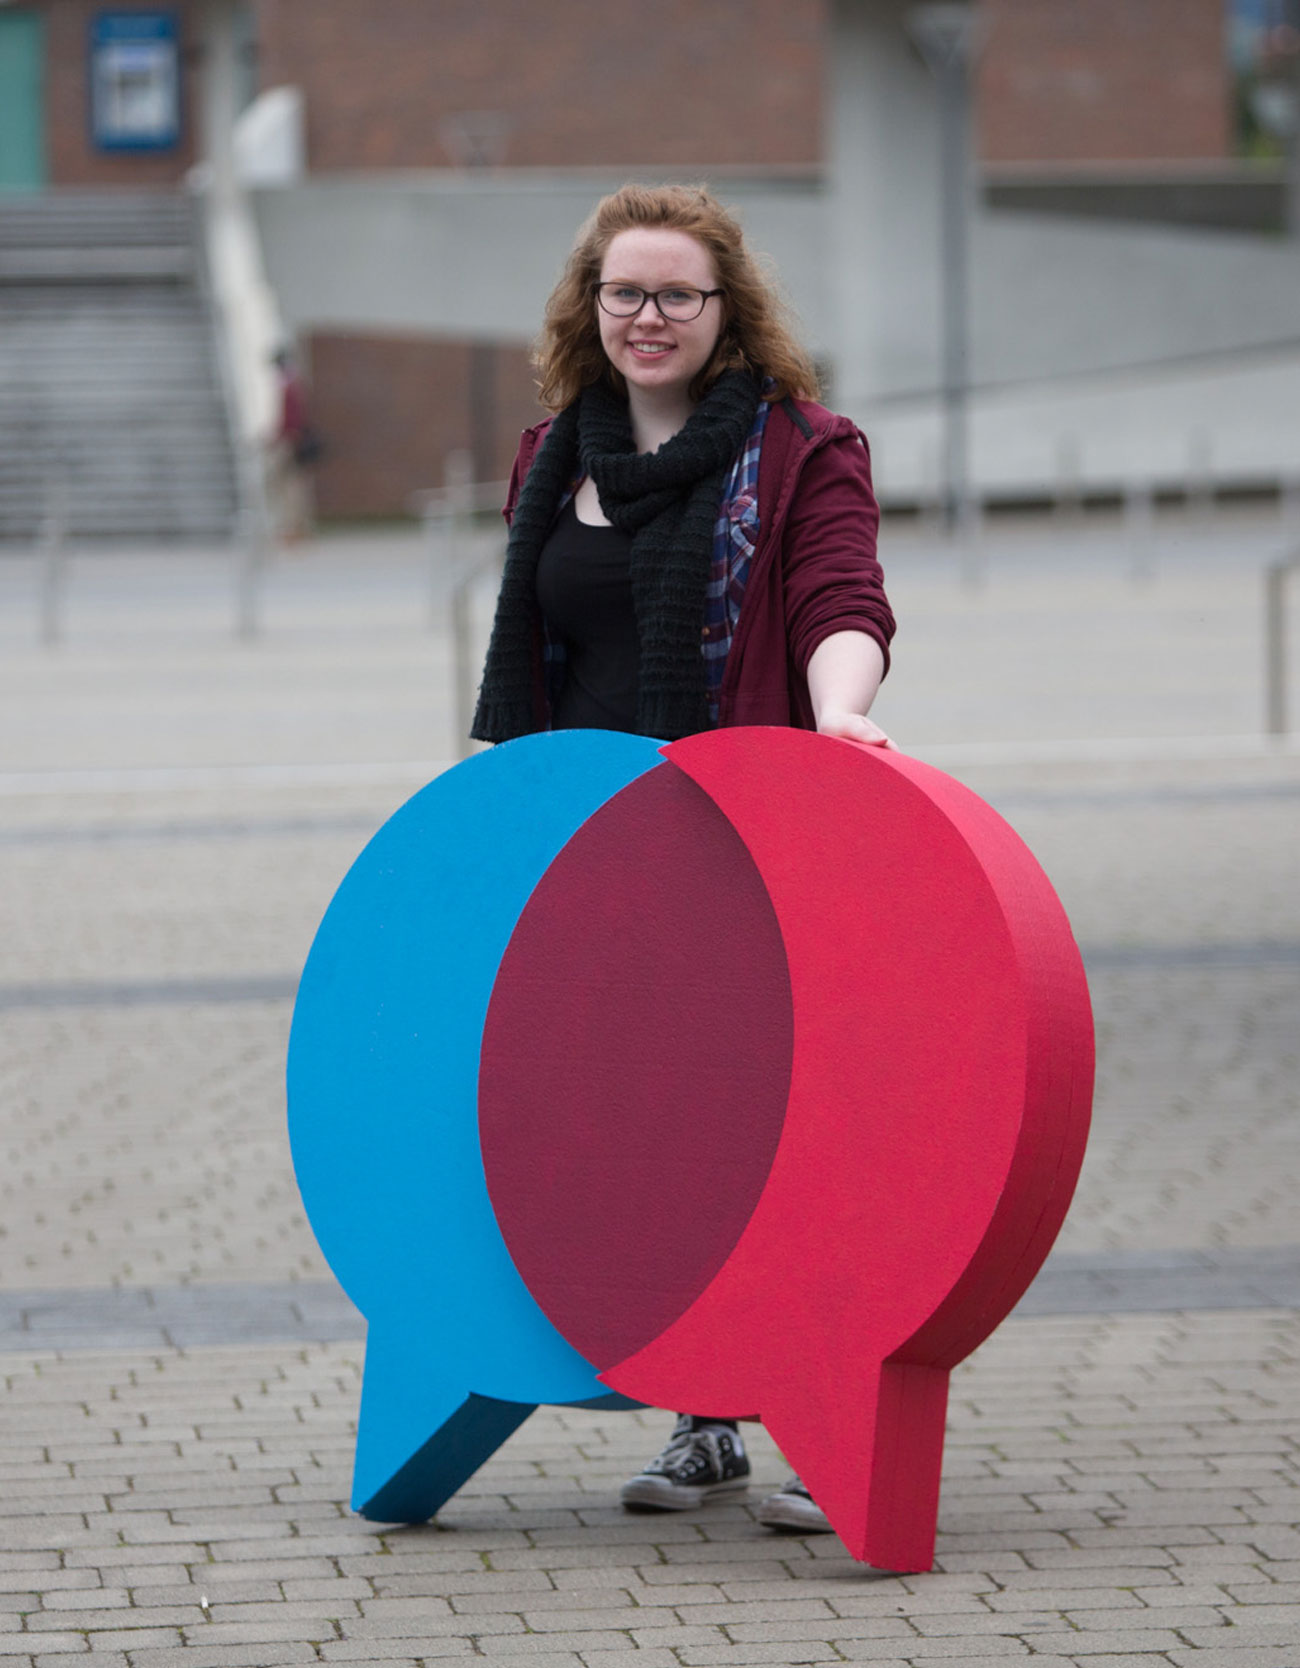 UL Bachelor of Arts Campaign Video and Photography Production student holding linguistics icon